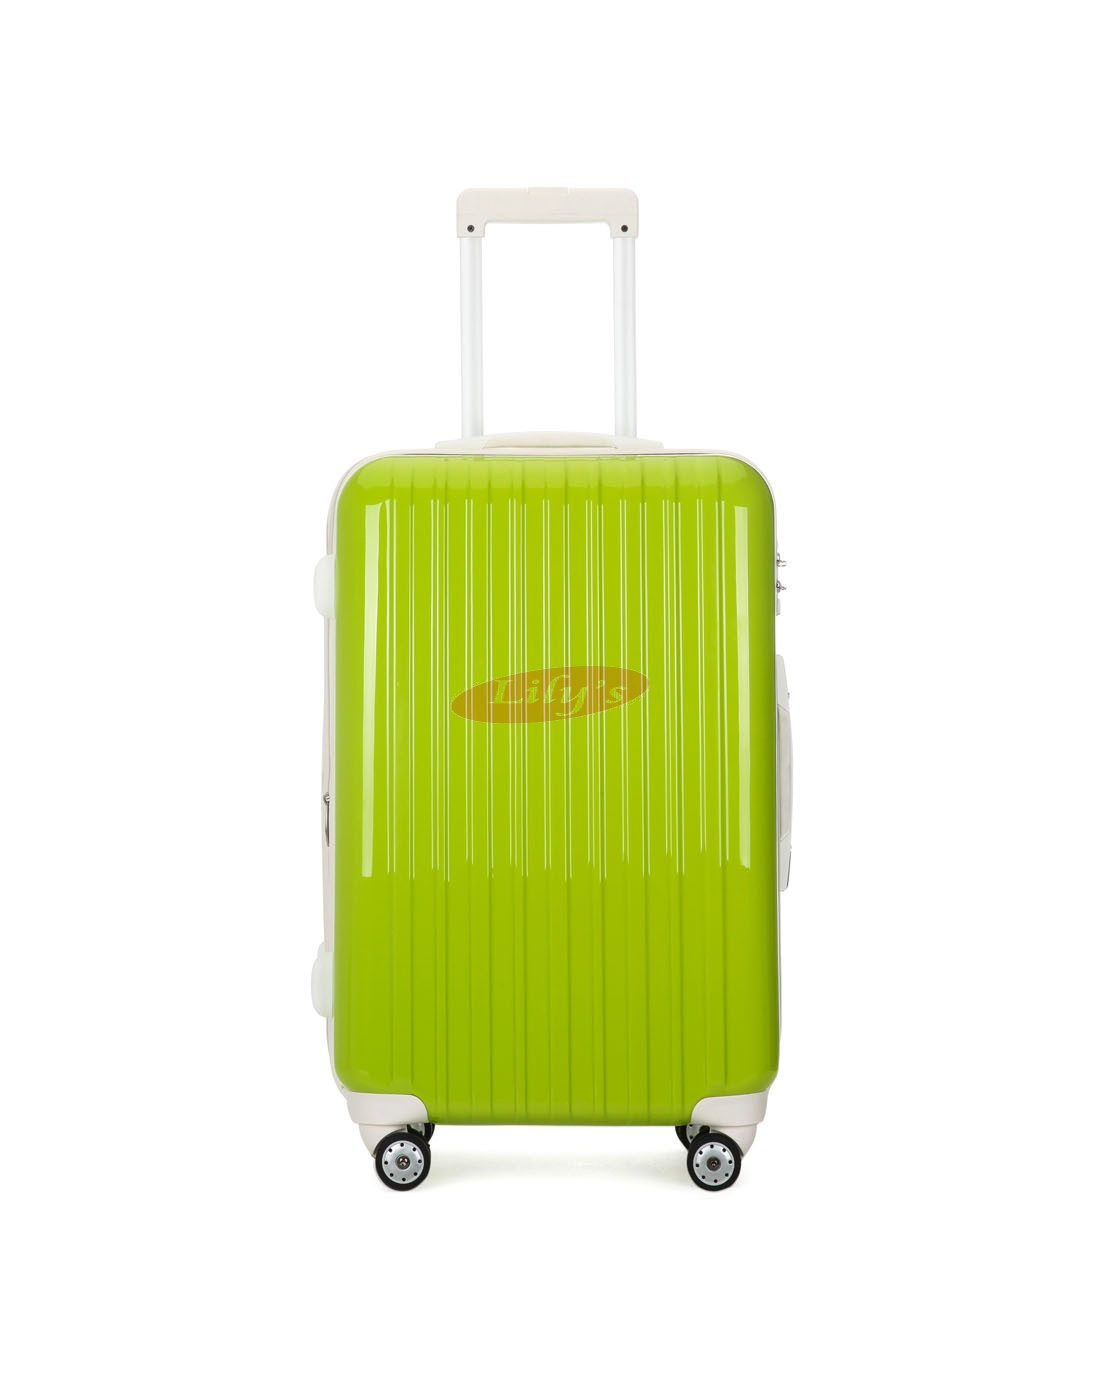 """AIRCROSS 2PC Set Luggage A55 Light Green Hard Case Expandable Trolley Luggage - 20""""26"""""""